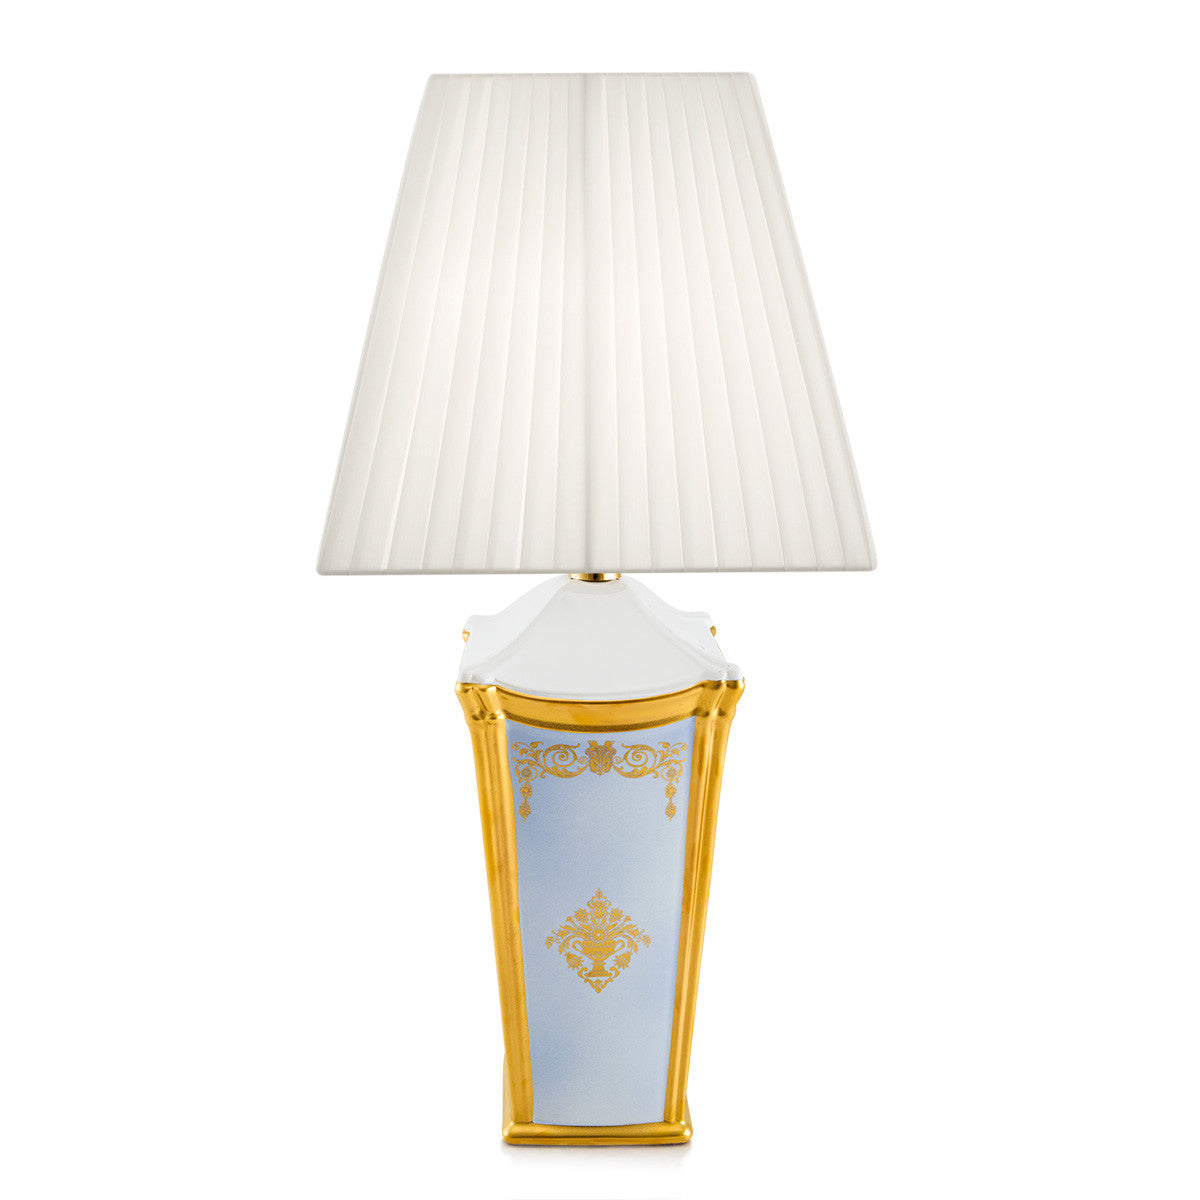 ceramic table lamp | 24kt gold | gold ornaments | classic lighting